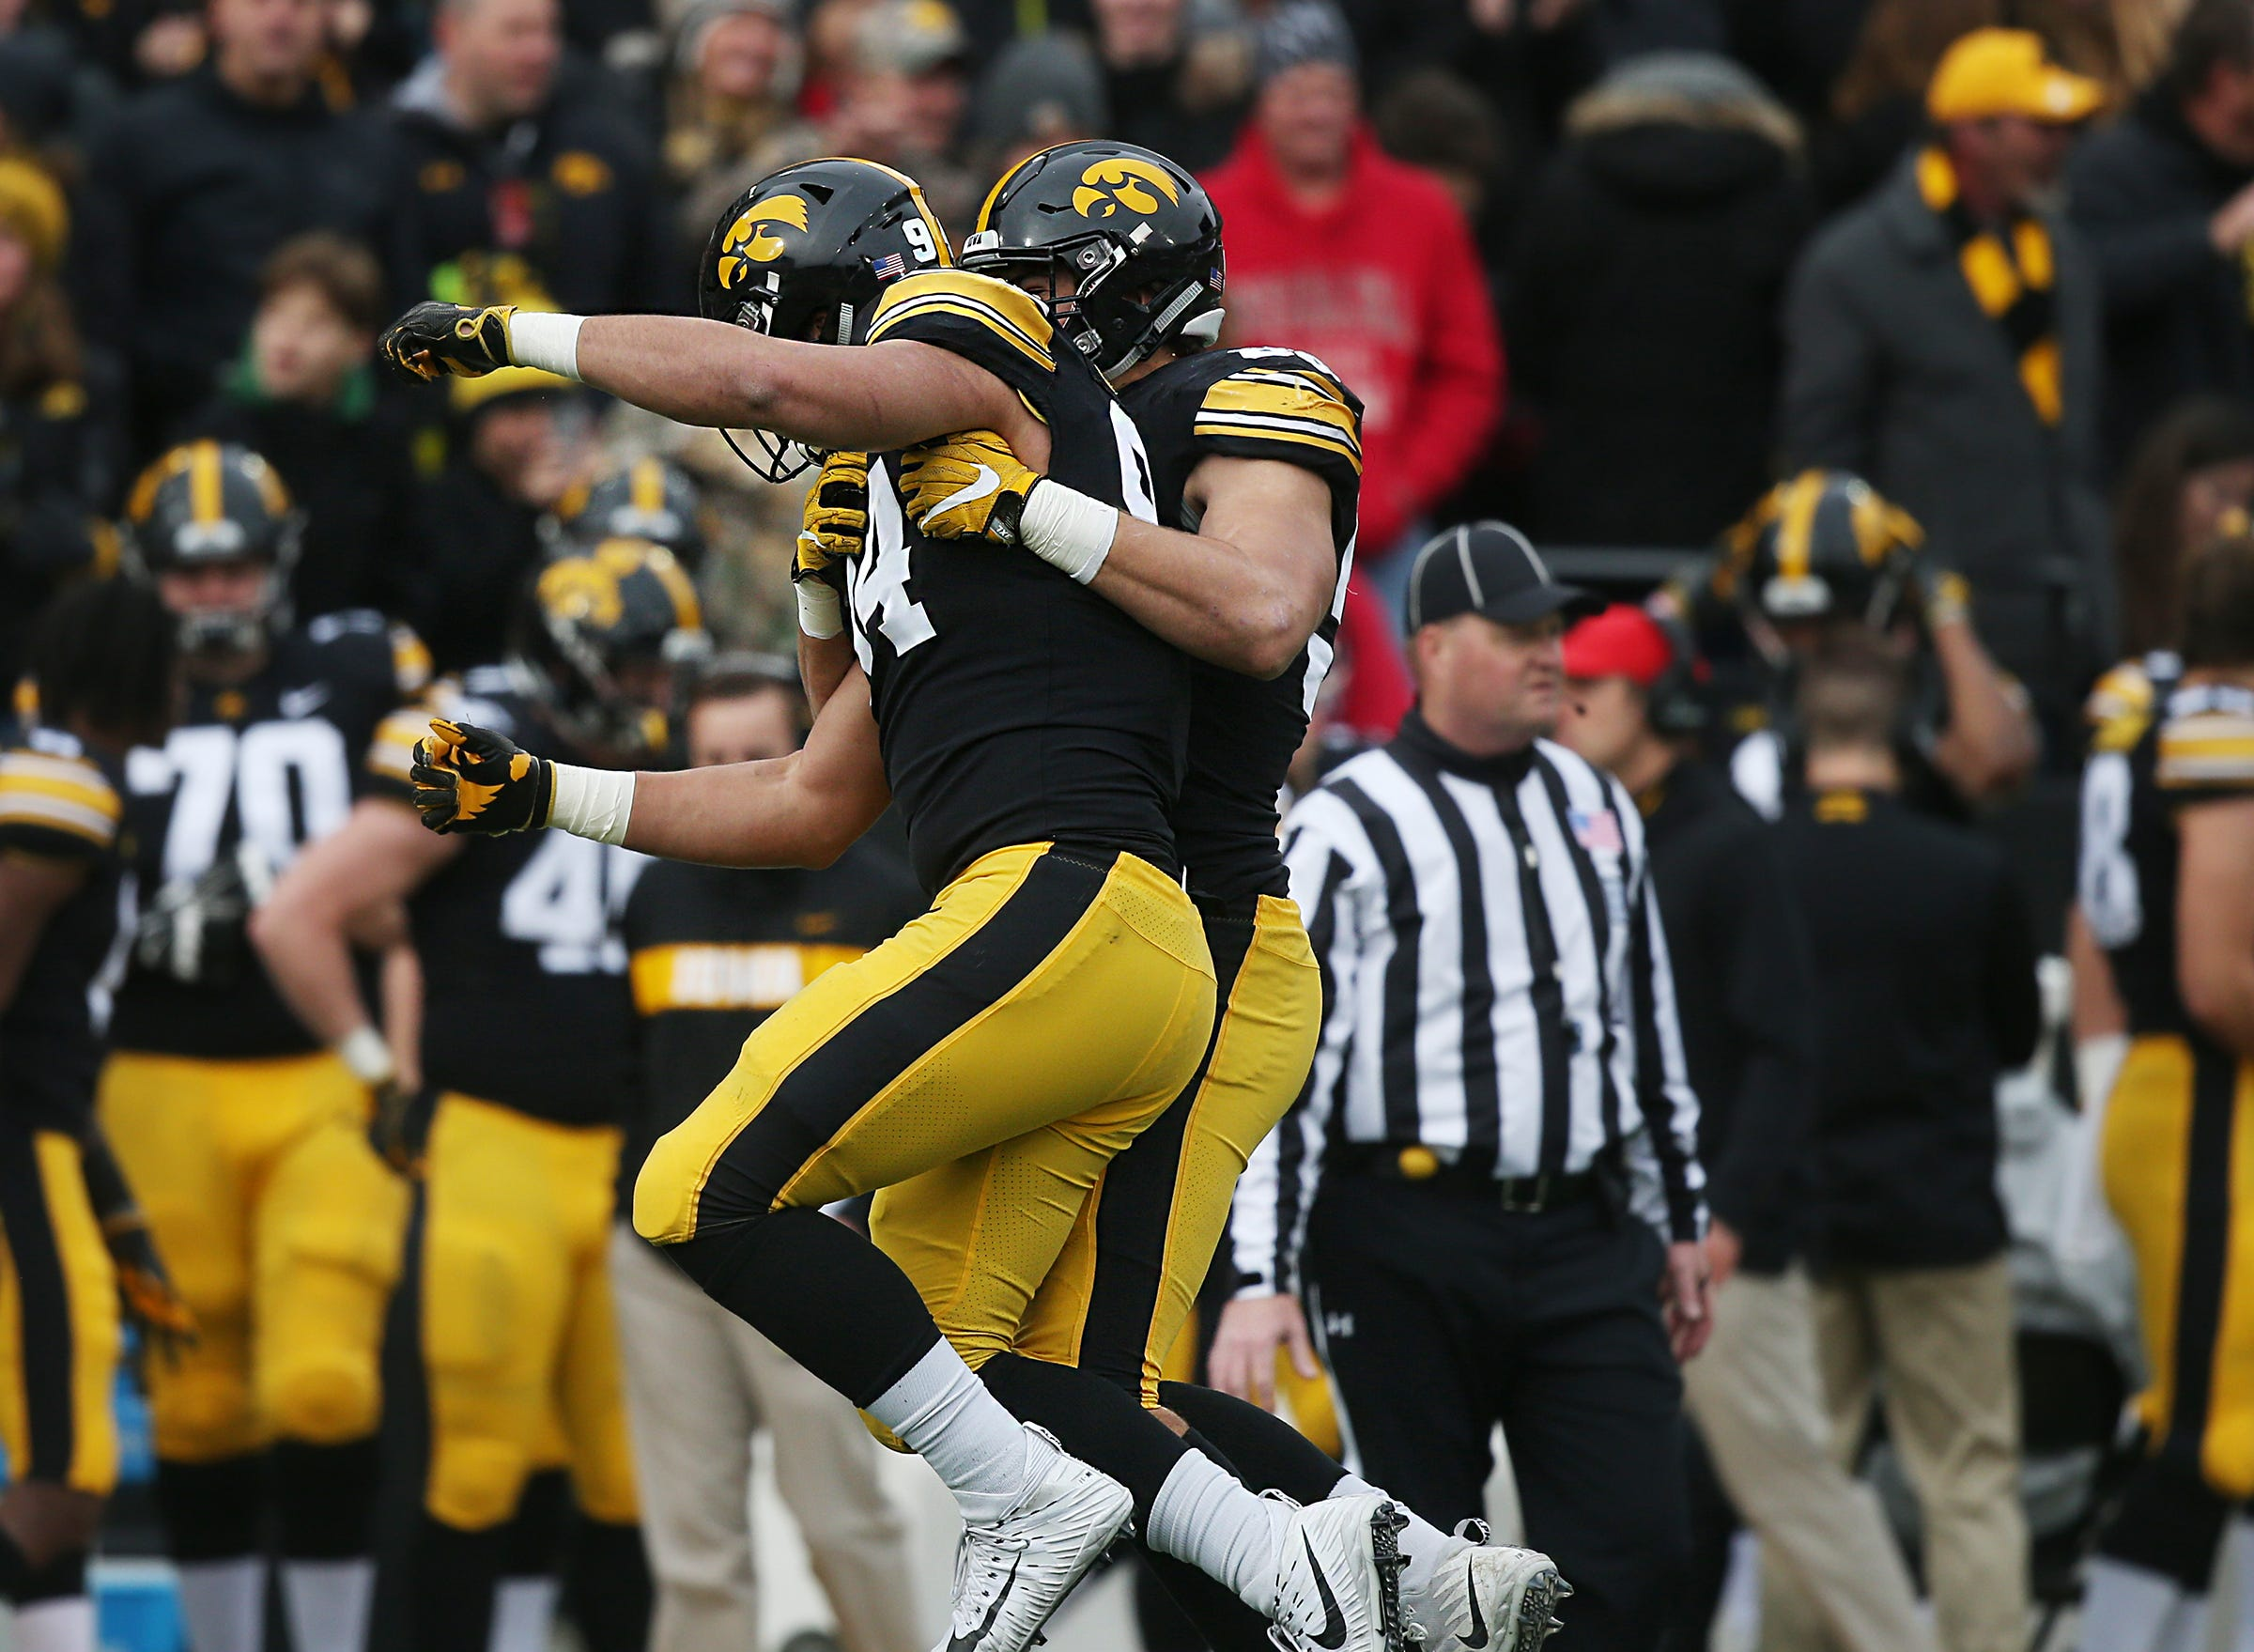 Iowa's A.J. Epenesa and Anthony Nelson celebrate after Nelson sacked Nebraska's quarterback during the senior day match-up between the Iowa Hawkeyes and the Nebraska Cornhuskers on Friday, Nov. 23, 2018, at Kinnick Stadium, in Iowa City.